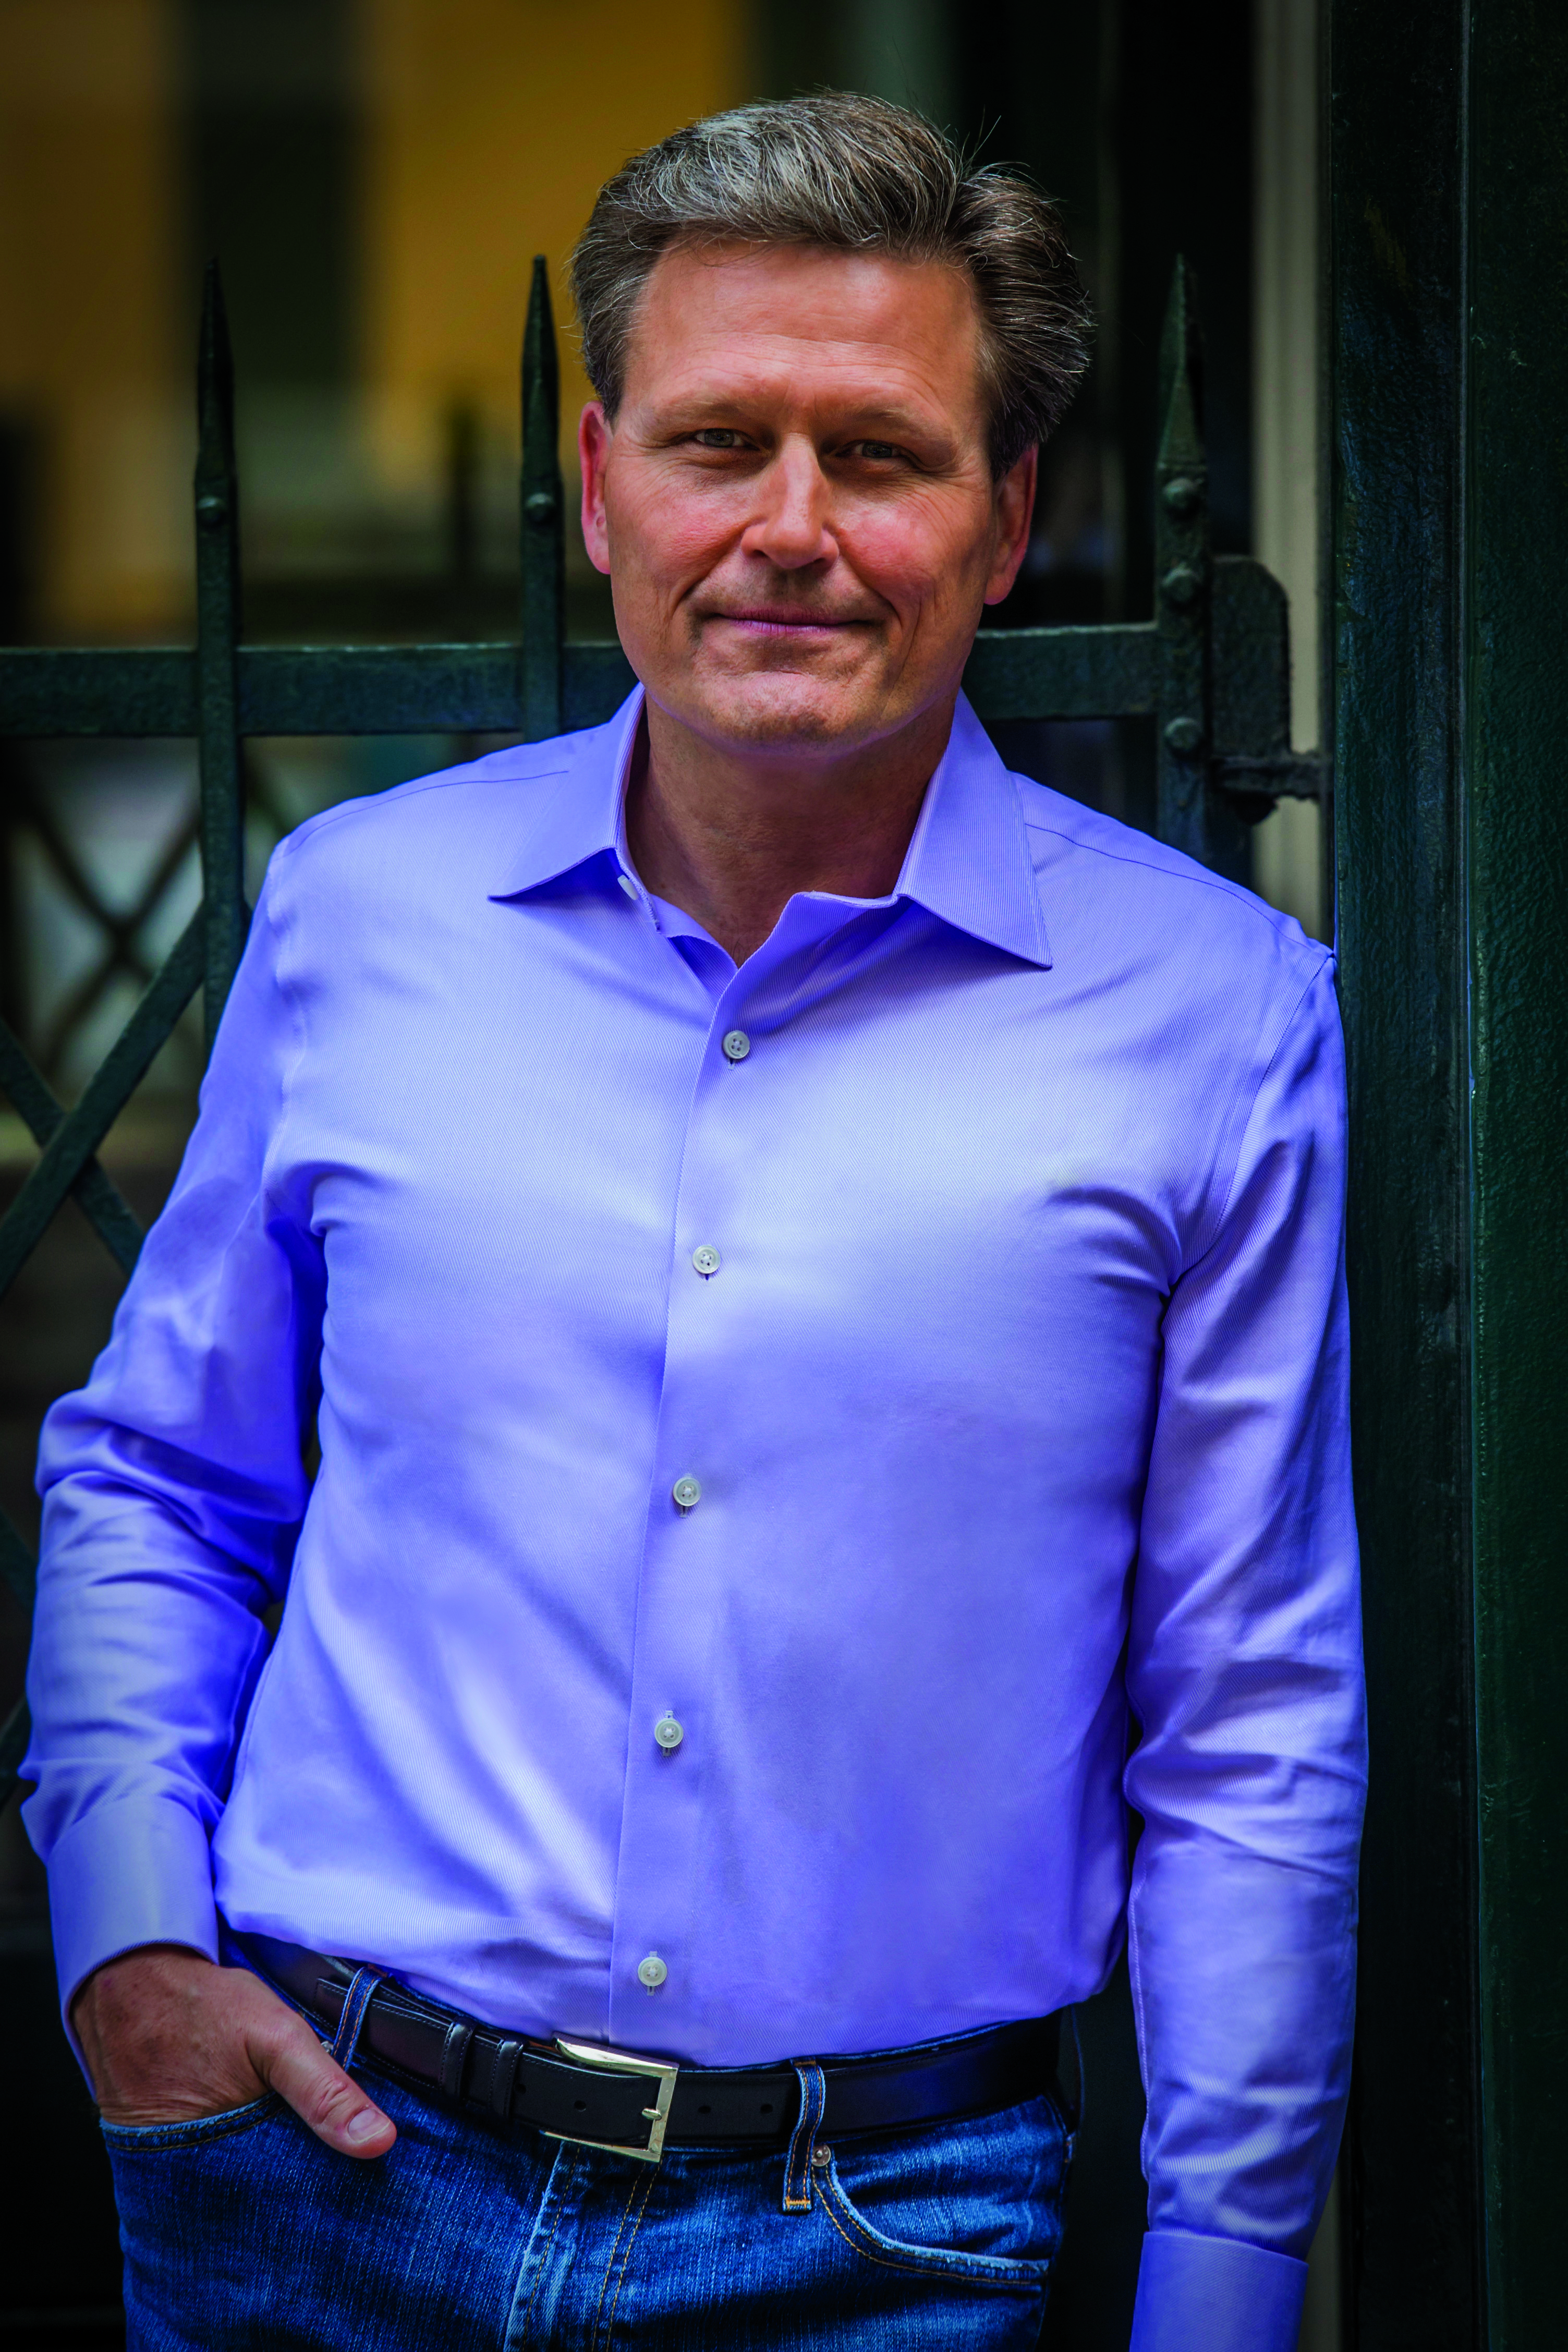 David Baldacci: Author Talk & Book Signing